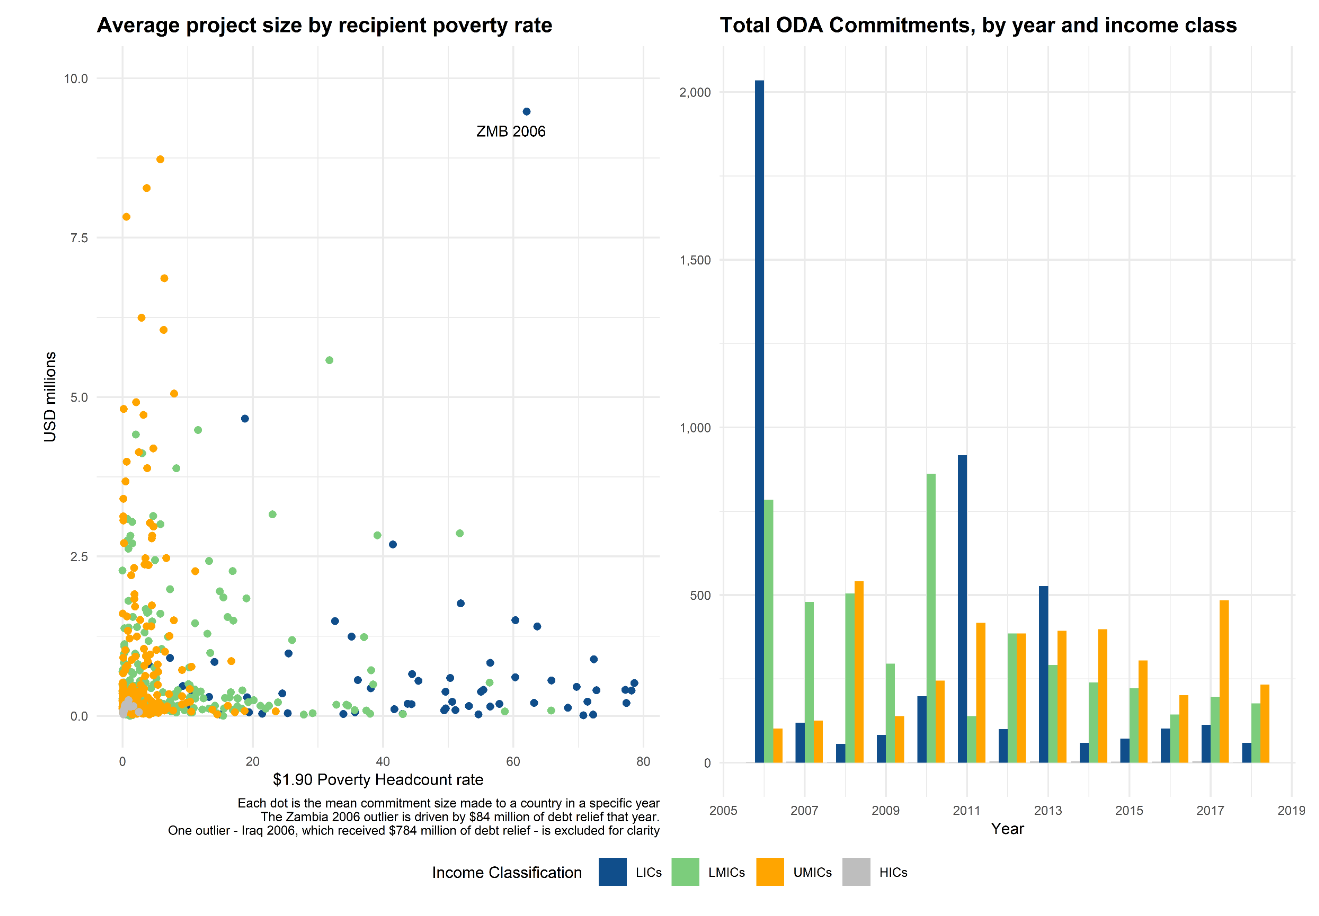 A chart showing total ODA commitments